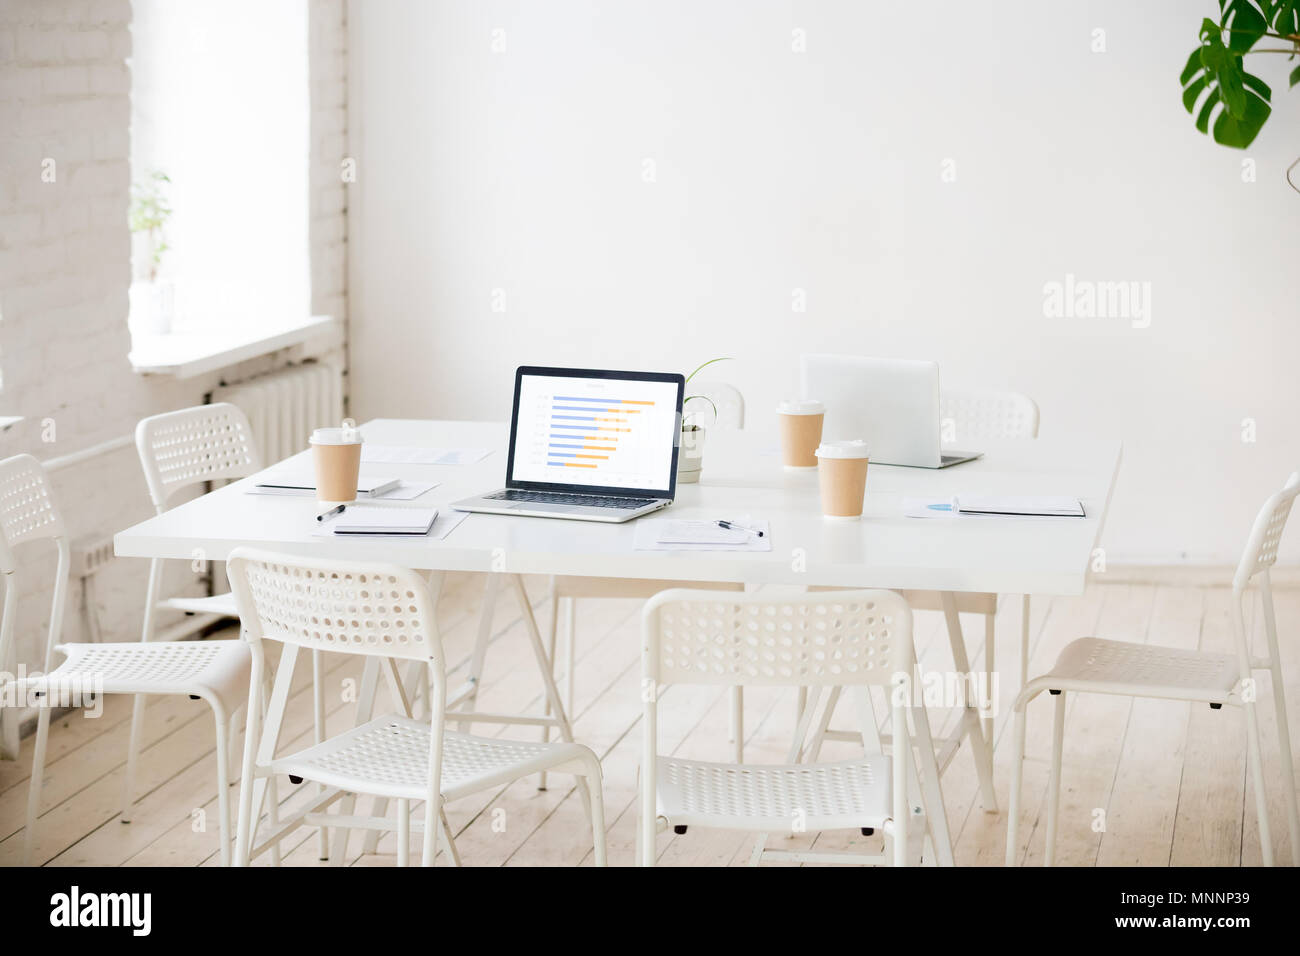 Meeting table with laptops and coffee in empty office room - Stock Image